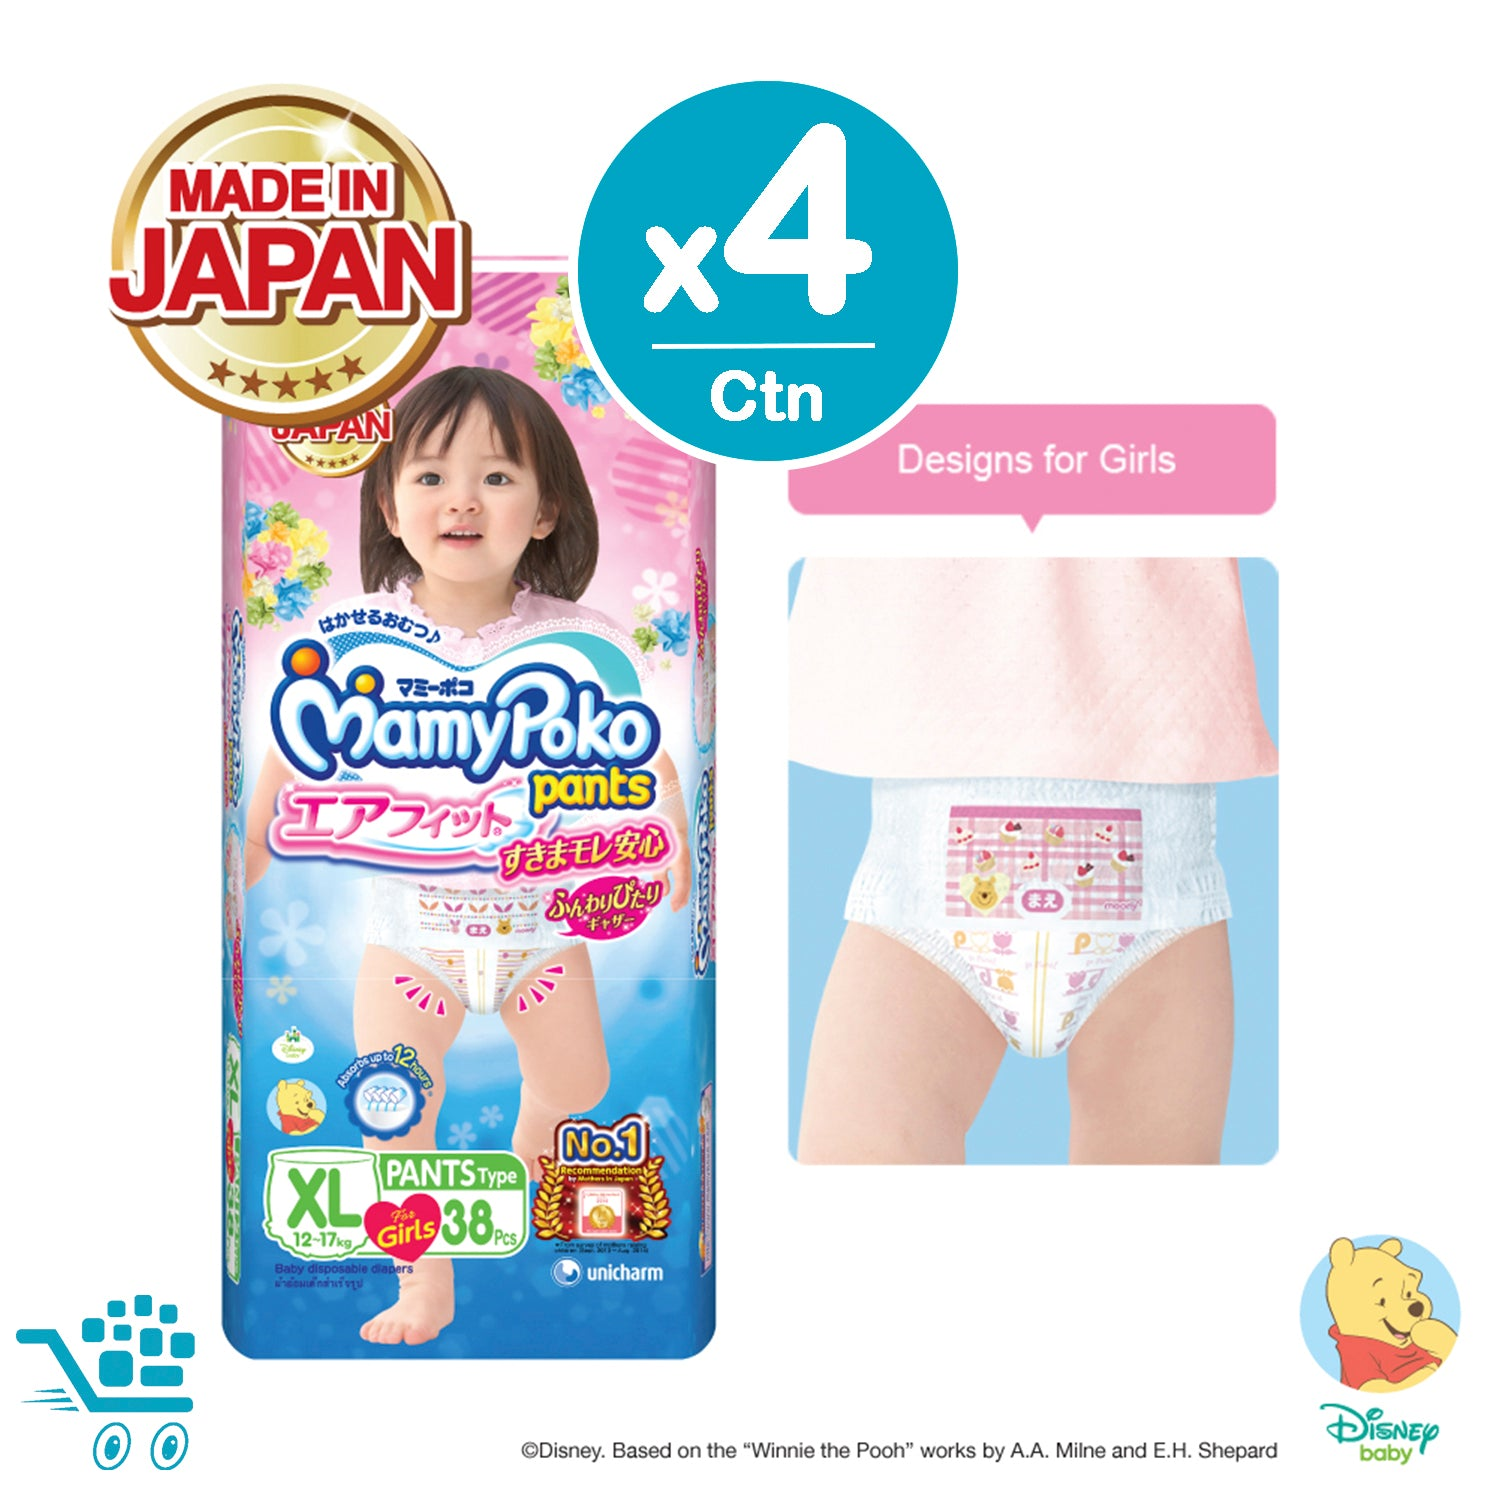 Mamypoko Air Fit Pants Type - Girl XL 38 pieces x 4 packs JPQ